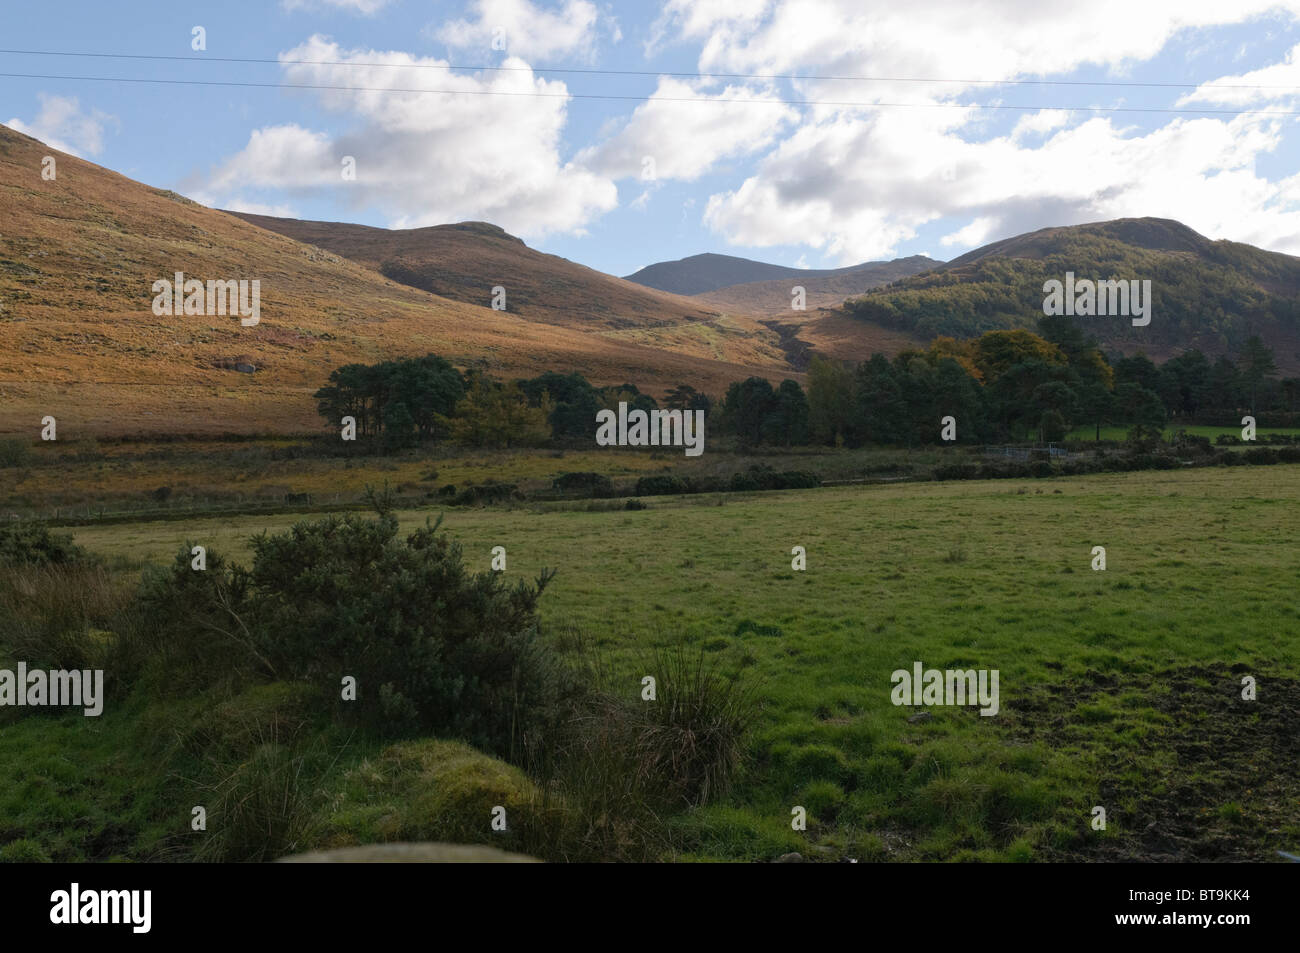 Mourne Mountains, County Down, Northern Ireland, featured in Game of Thrones - Stock Image